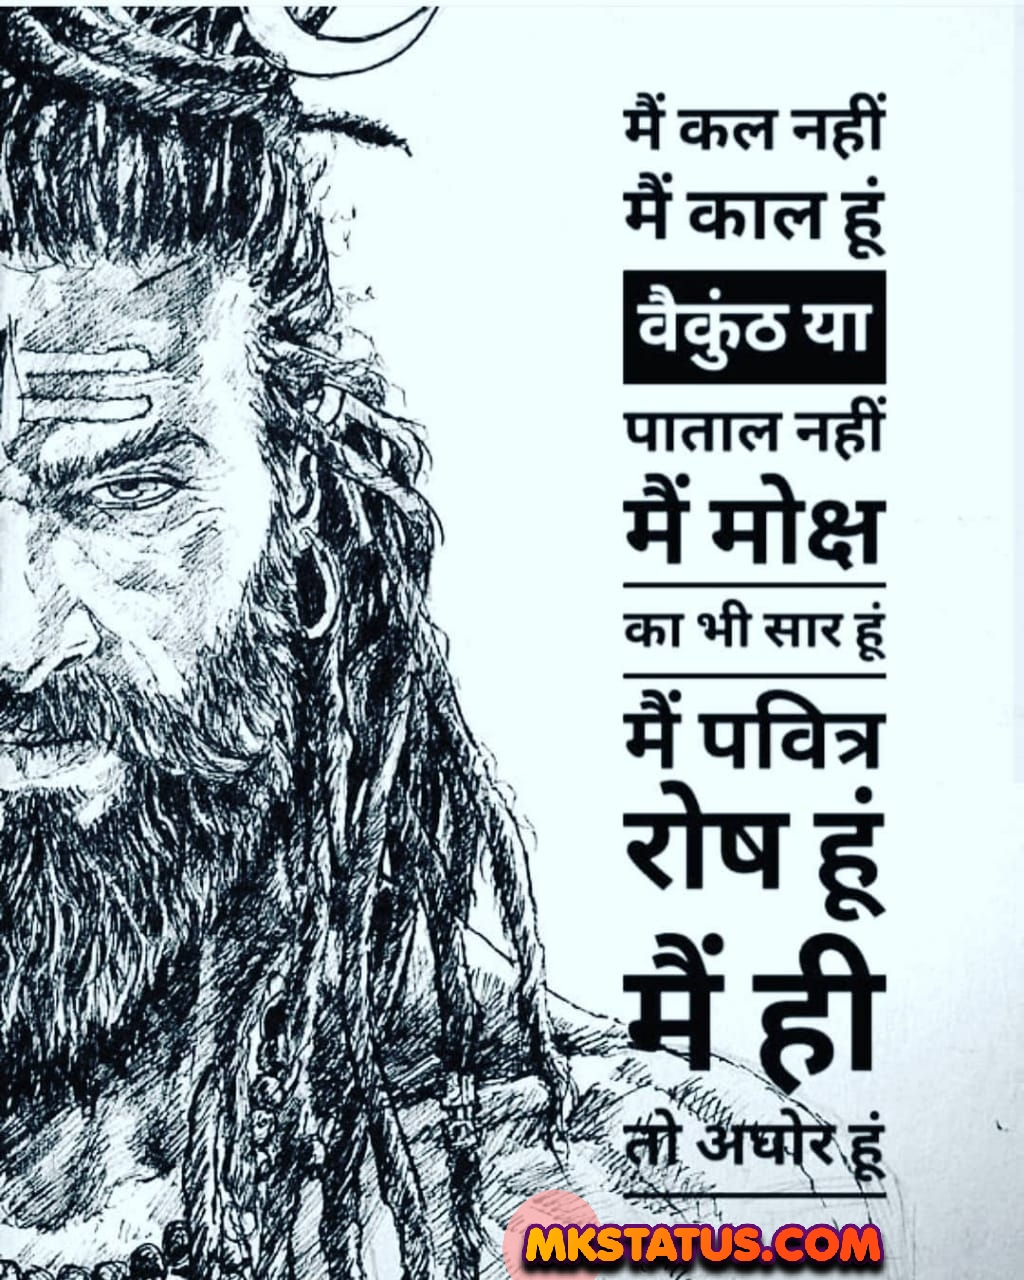 maha shivratri new quotes 2020